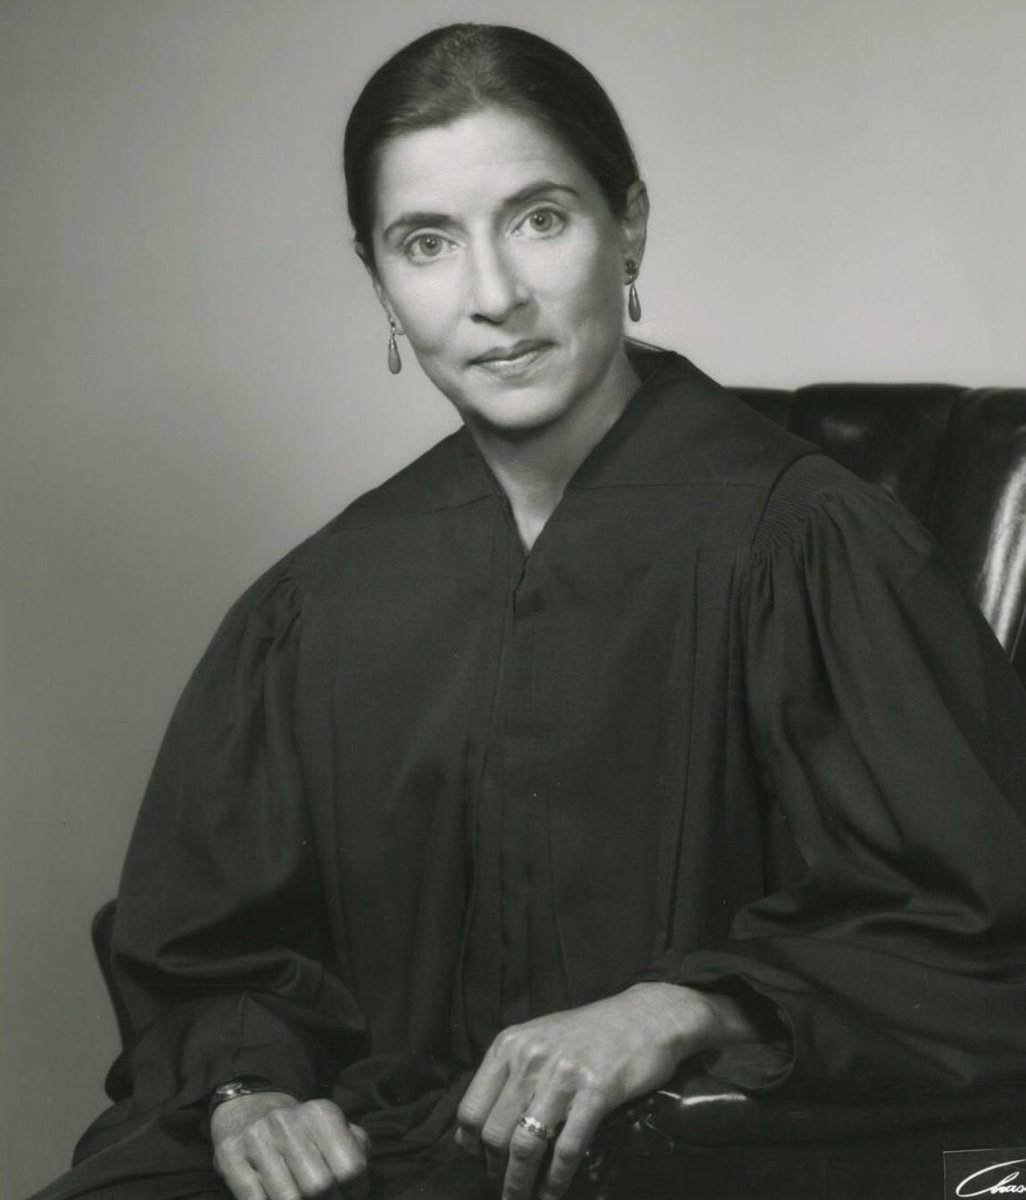 Rest in power, RBG. Thankful for your service, wisdom and devotion to justice. https://t.co/bqKl3a1OjC